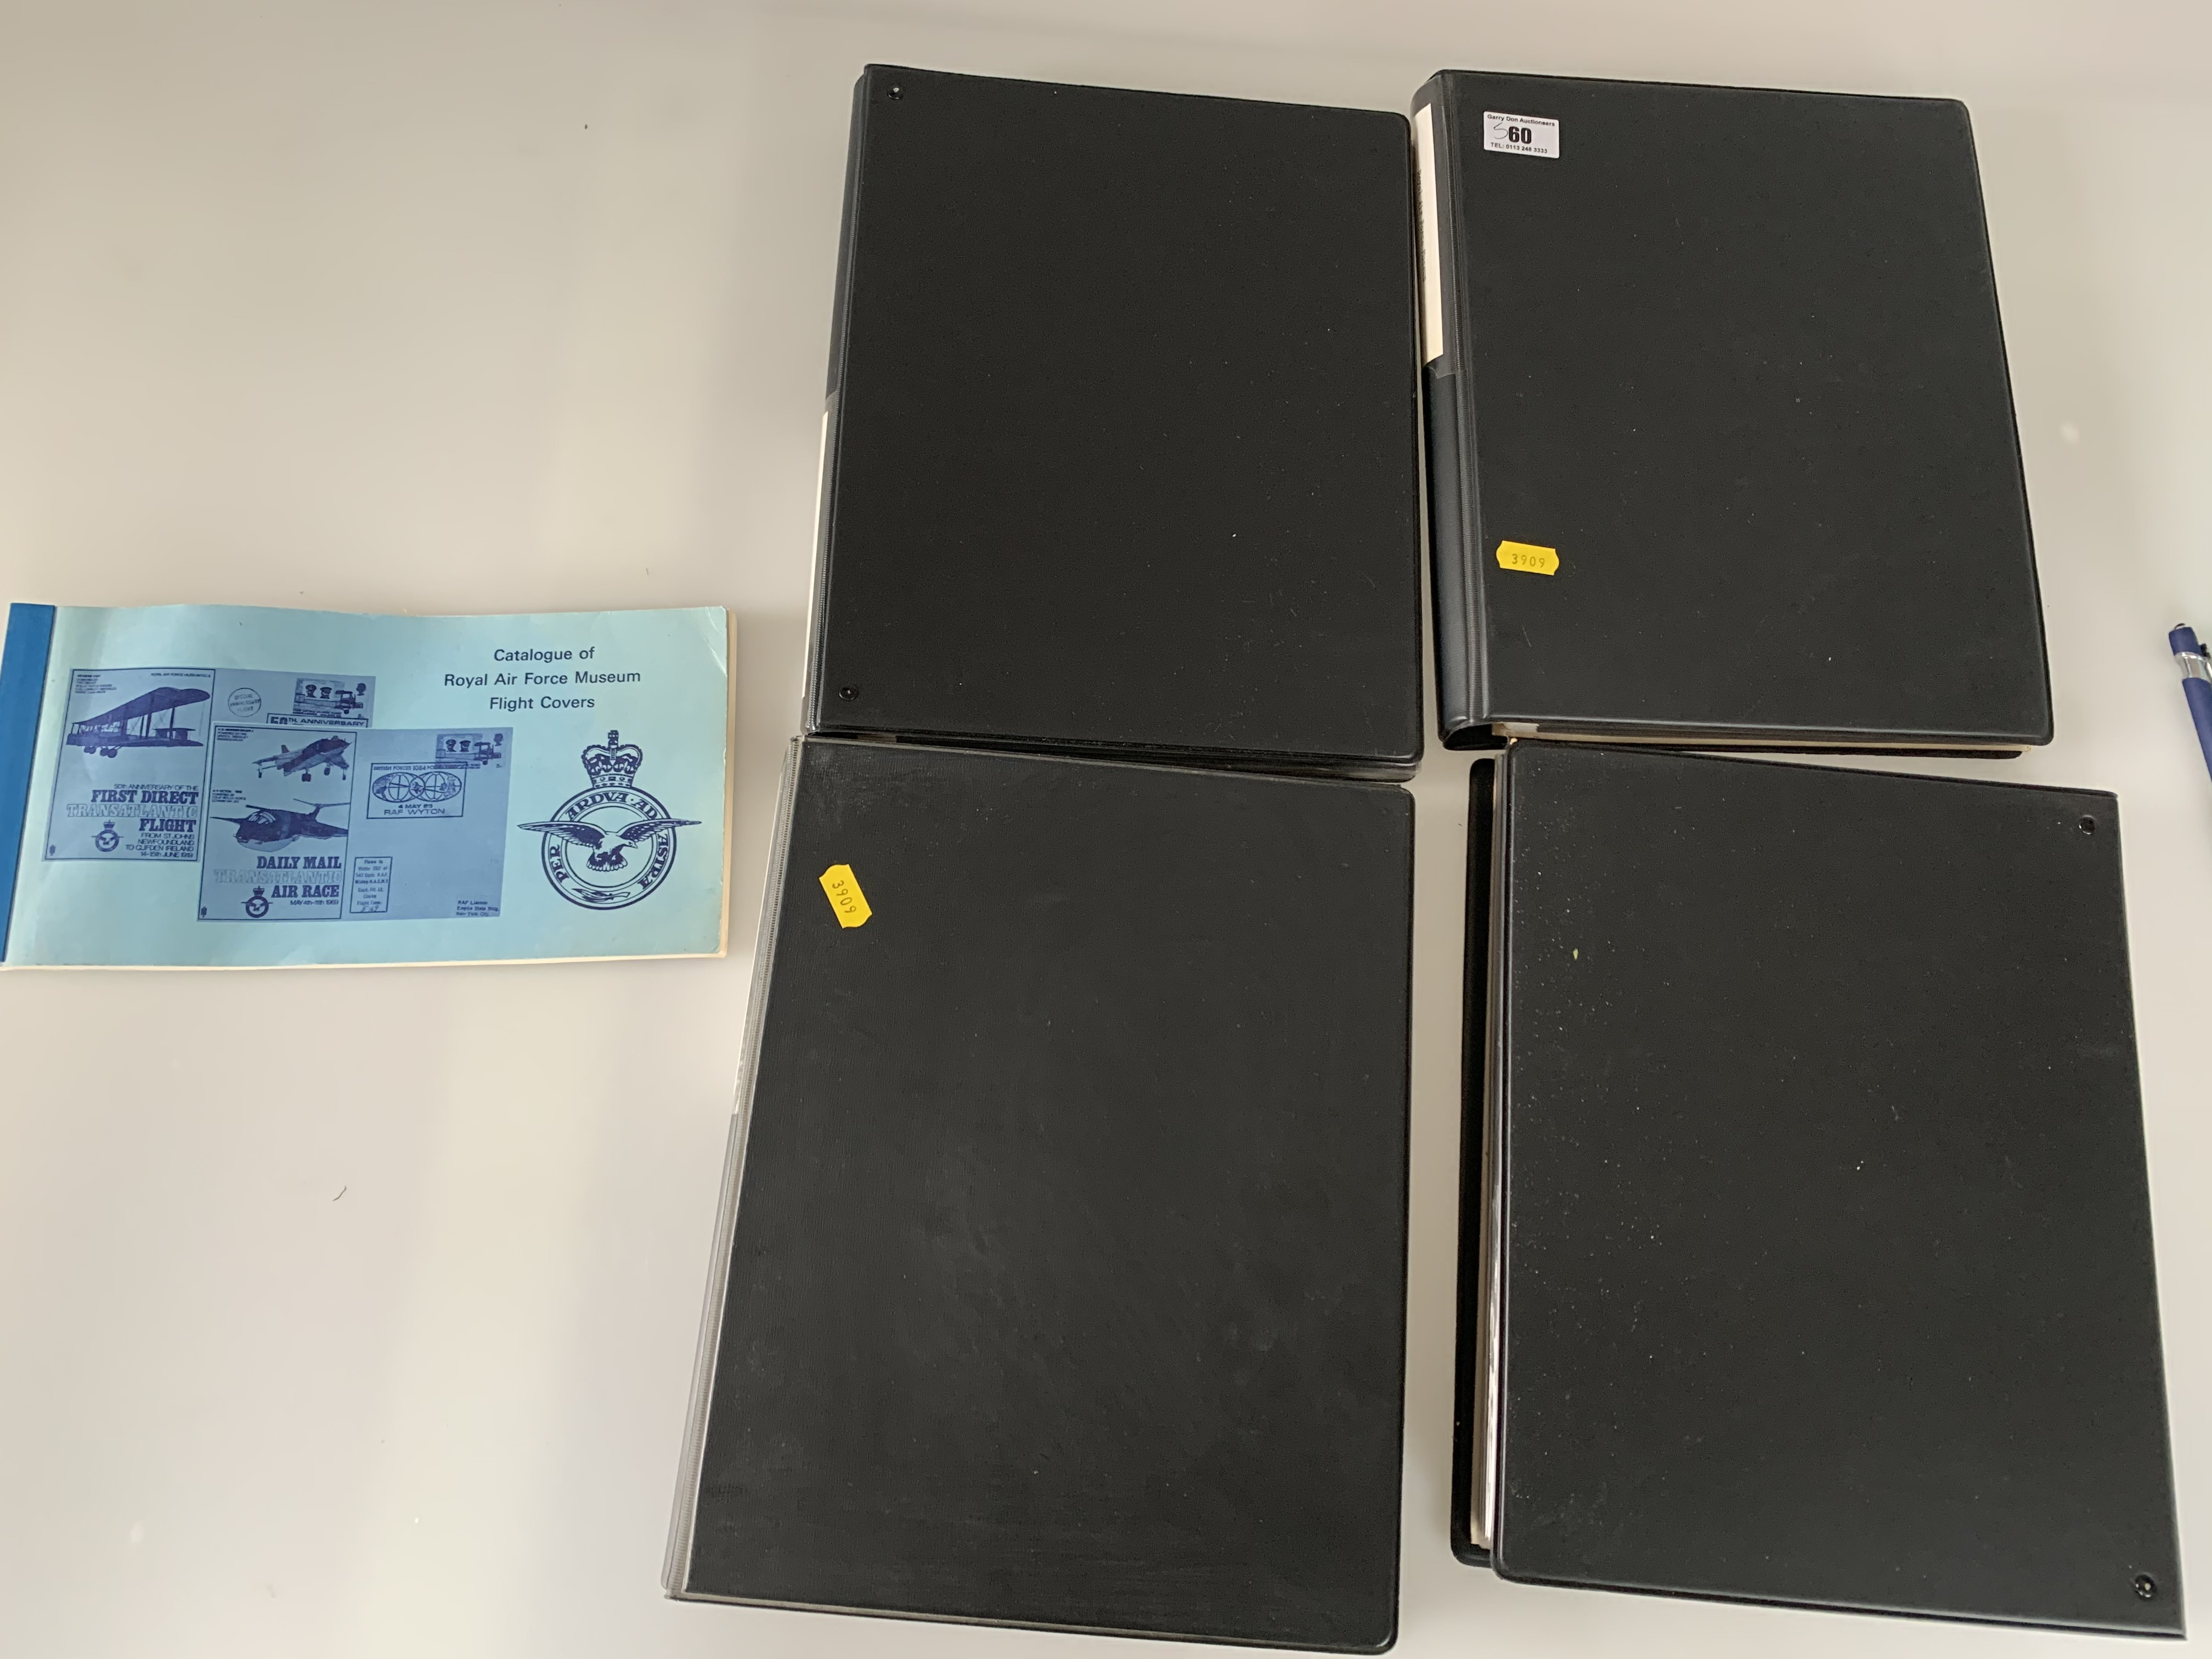 Catalogue of RAF Museum Flight Covers and 4 albums of RAF Covers